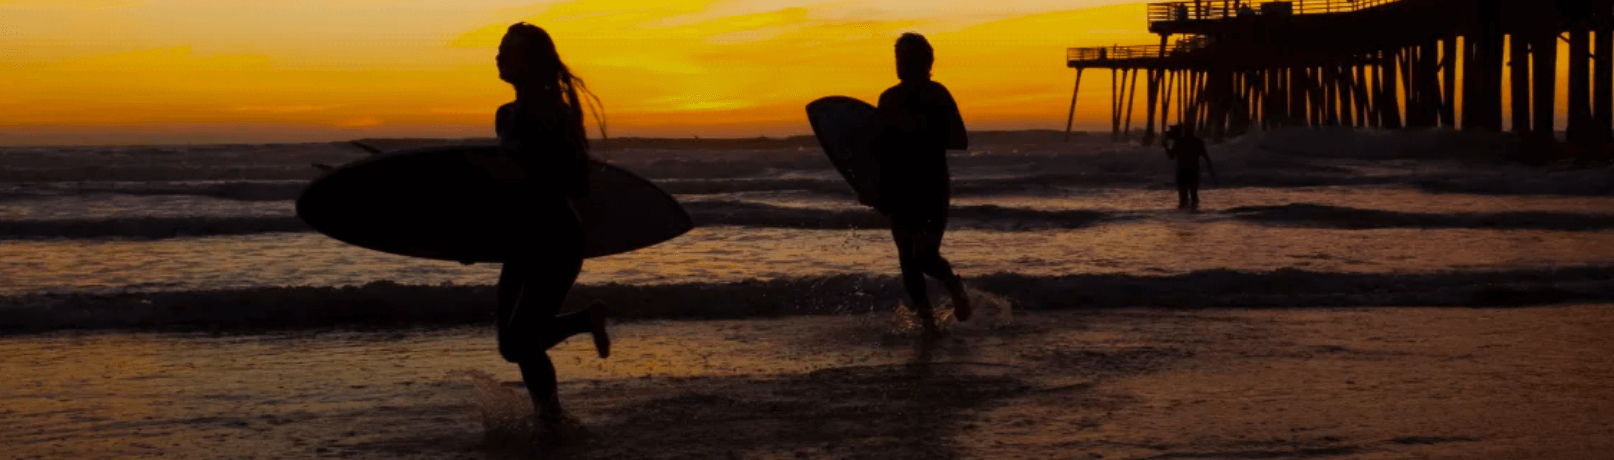 Surf's Up: The Best Places To Catch Waves This Summer